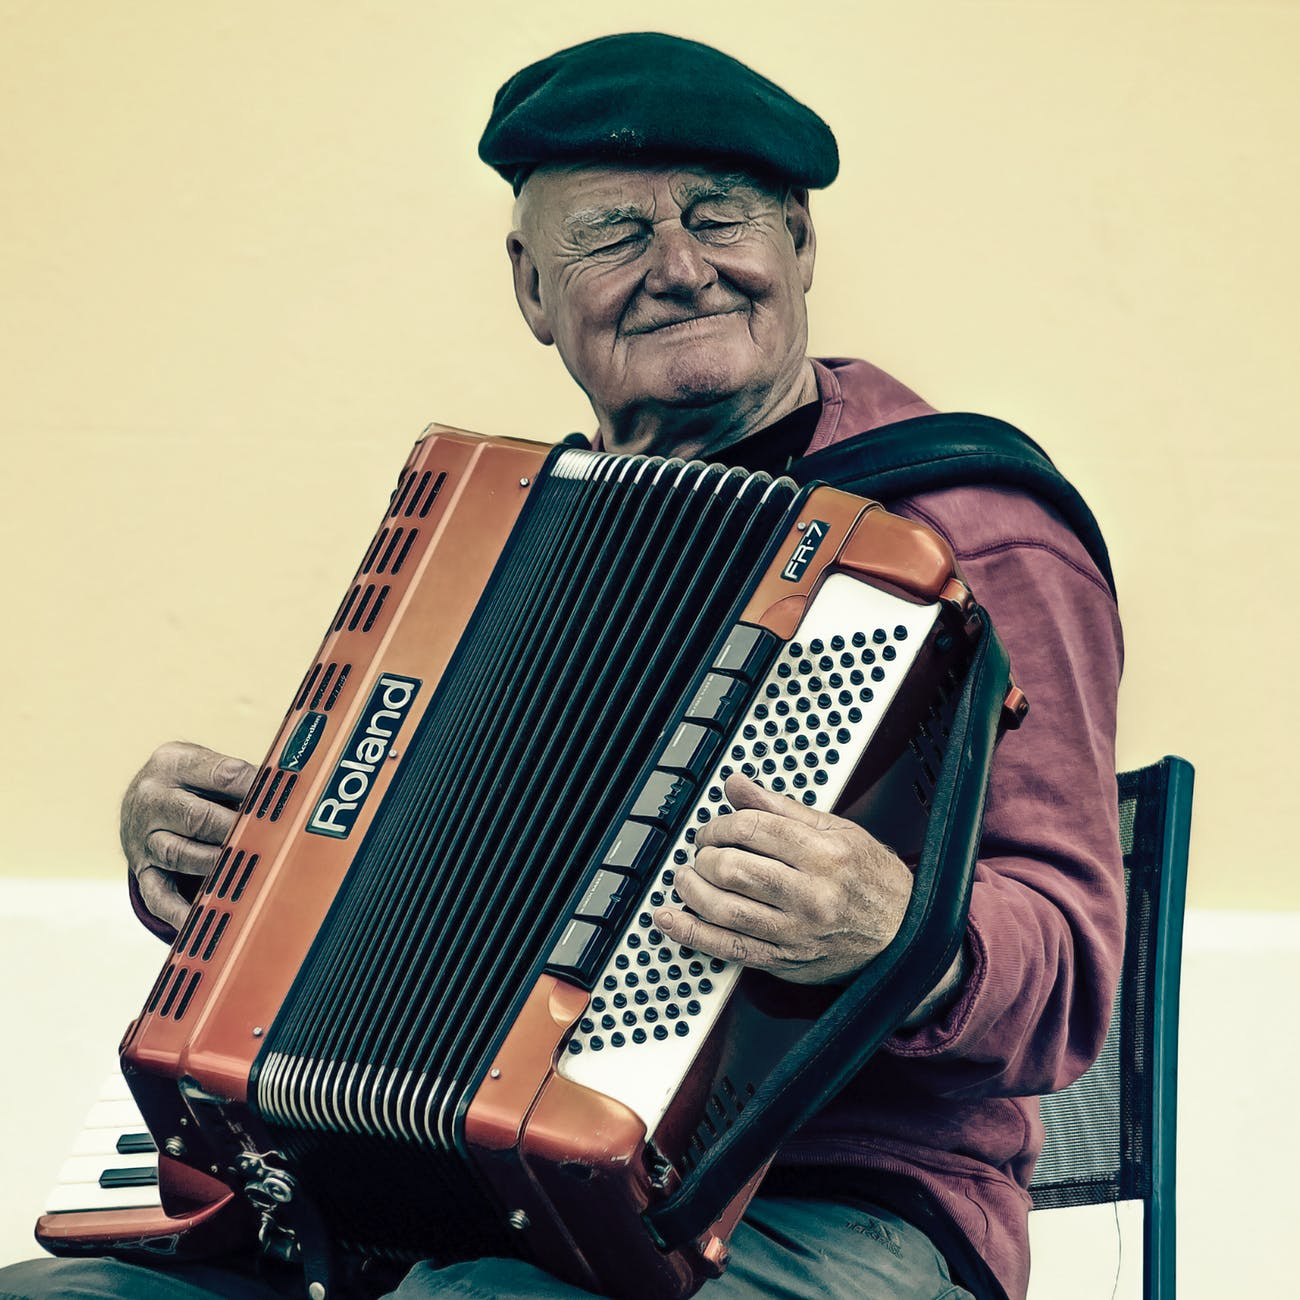 A senior man playing an accordion, busting the myth that seniors aren't creative.